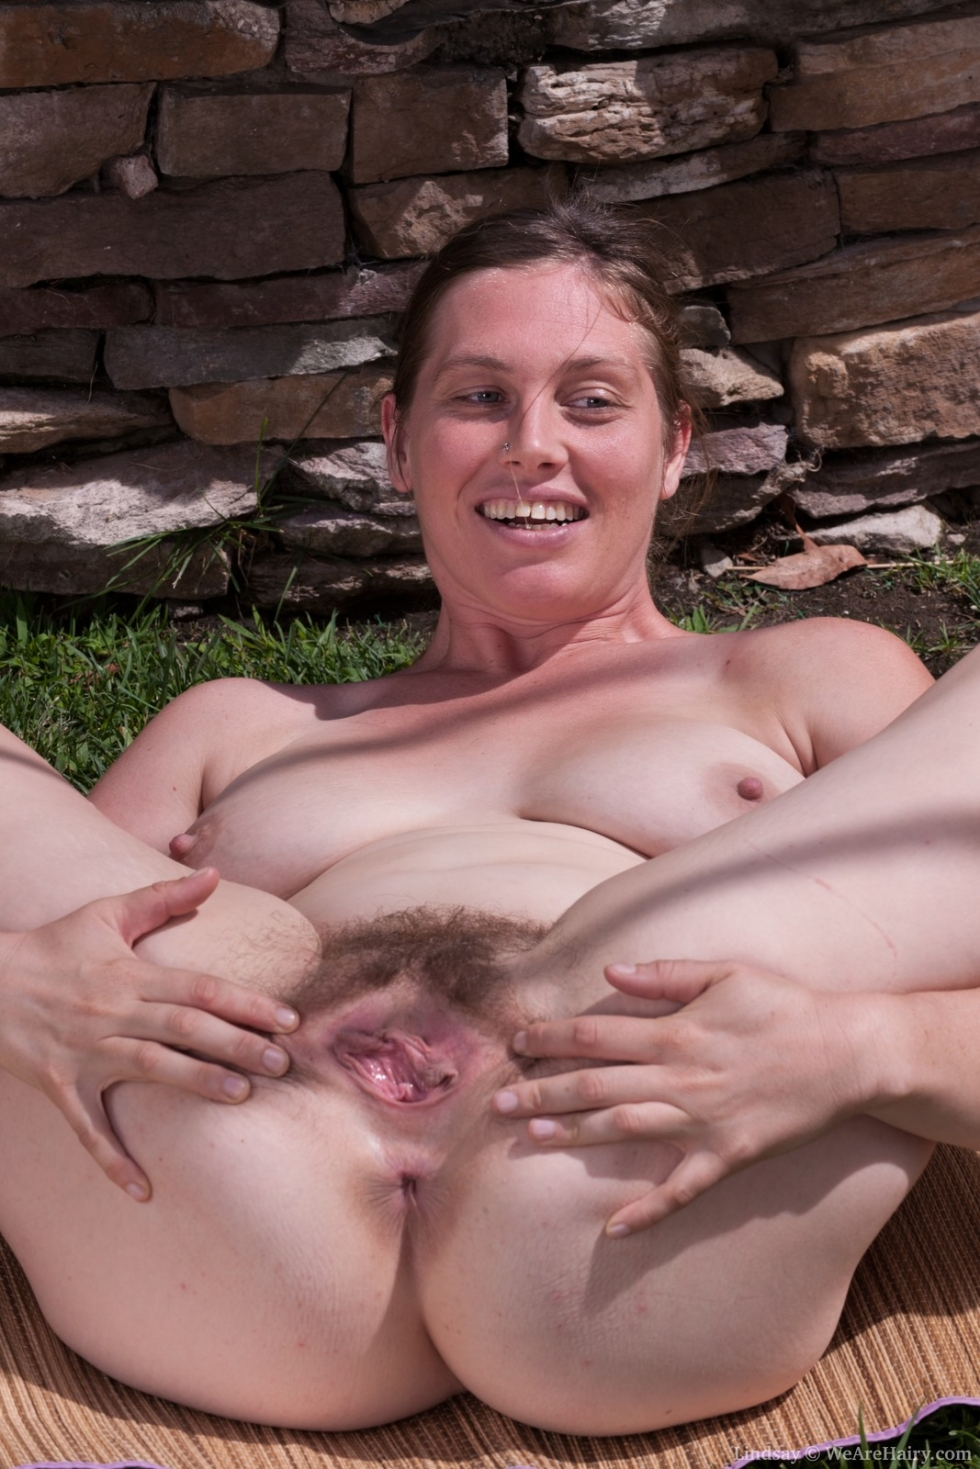 wearehairy lindsay outdoor masturbation session with